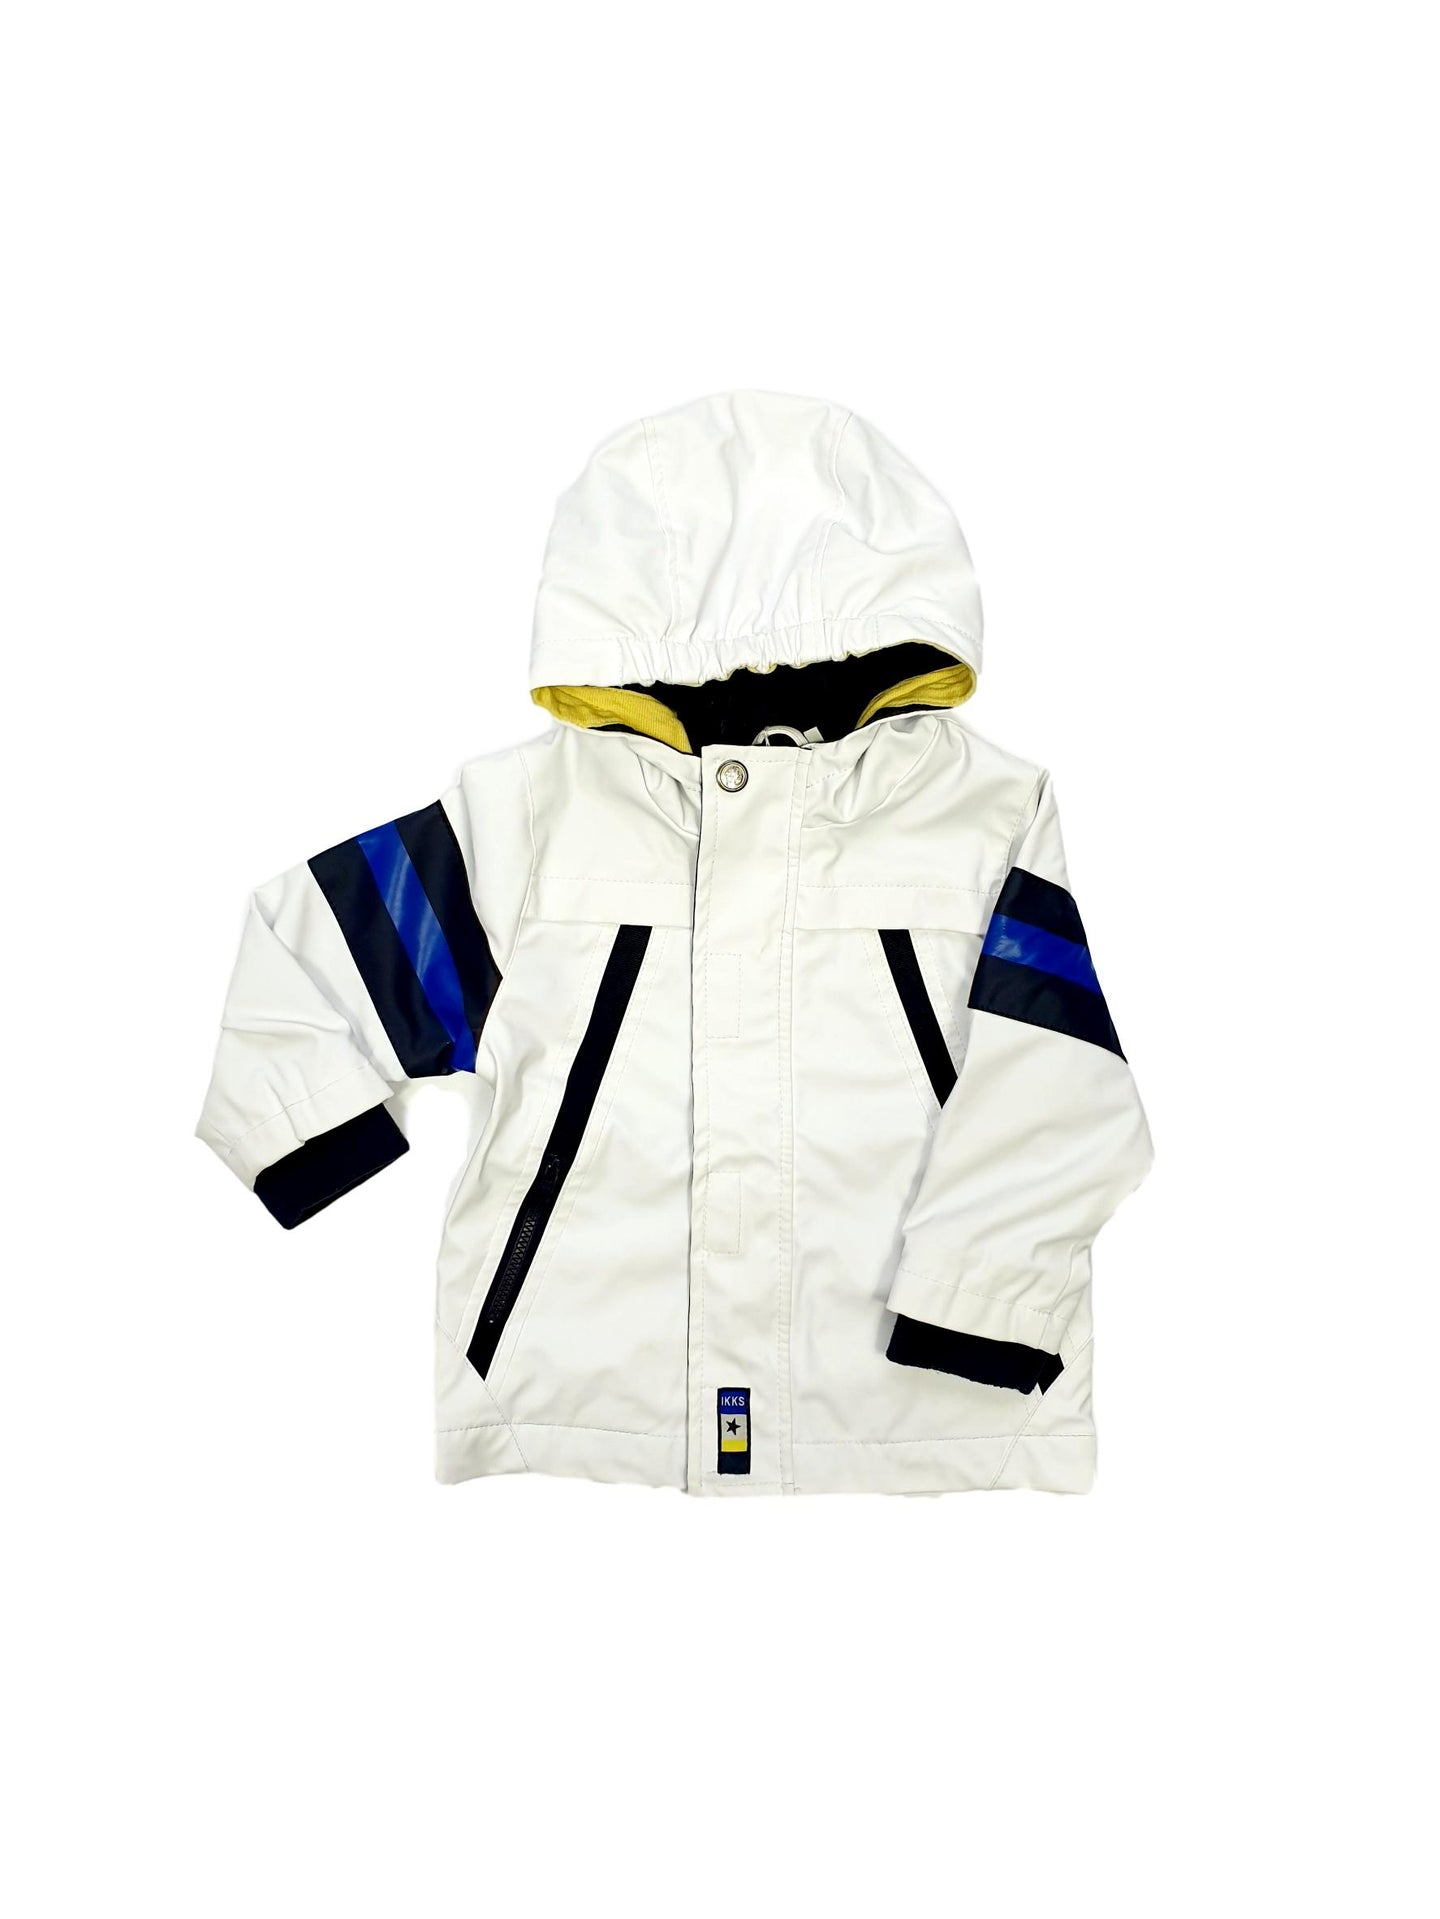 IKKS boy raincoat 12m